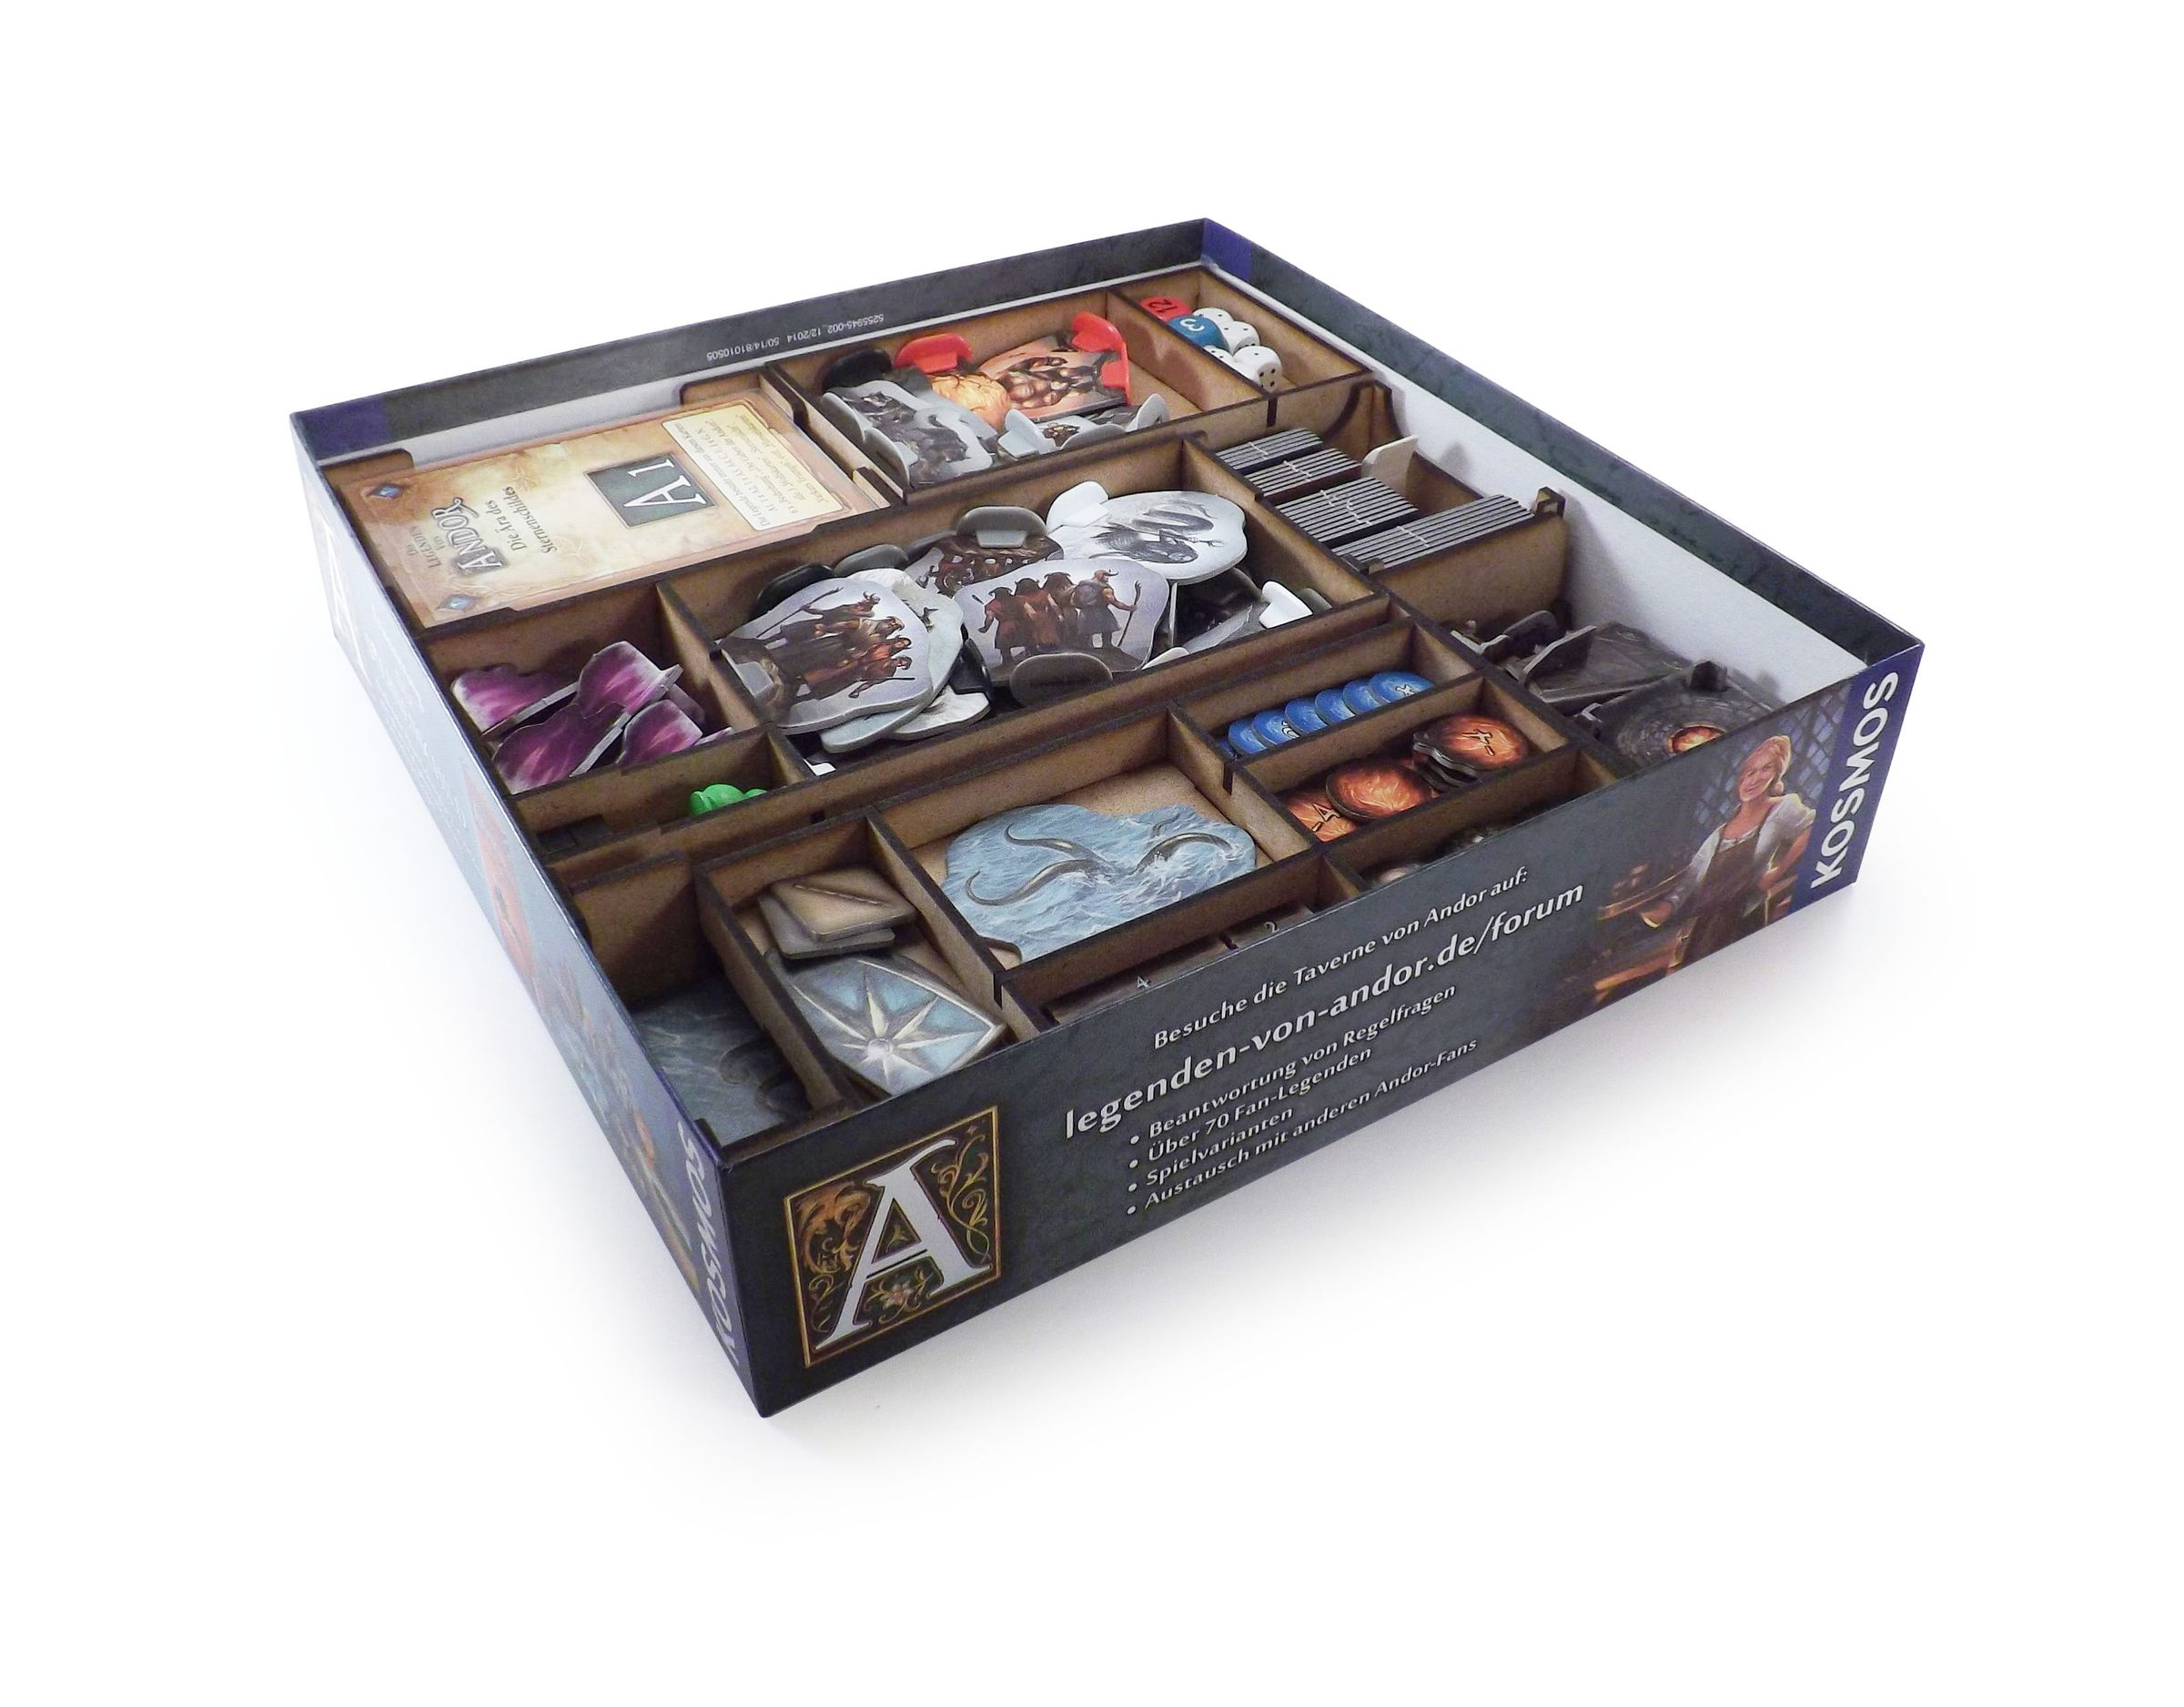 Boardgame Organizer for The Legends of Andor: The Journey North and the expansion The Star Shield